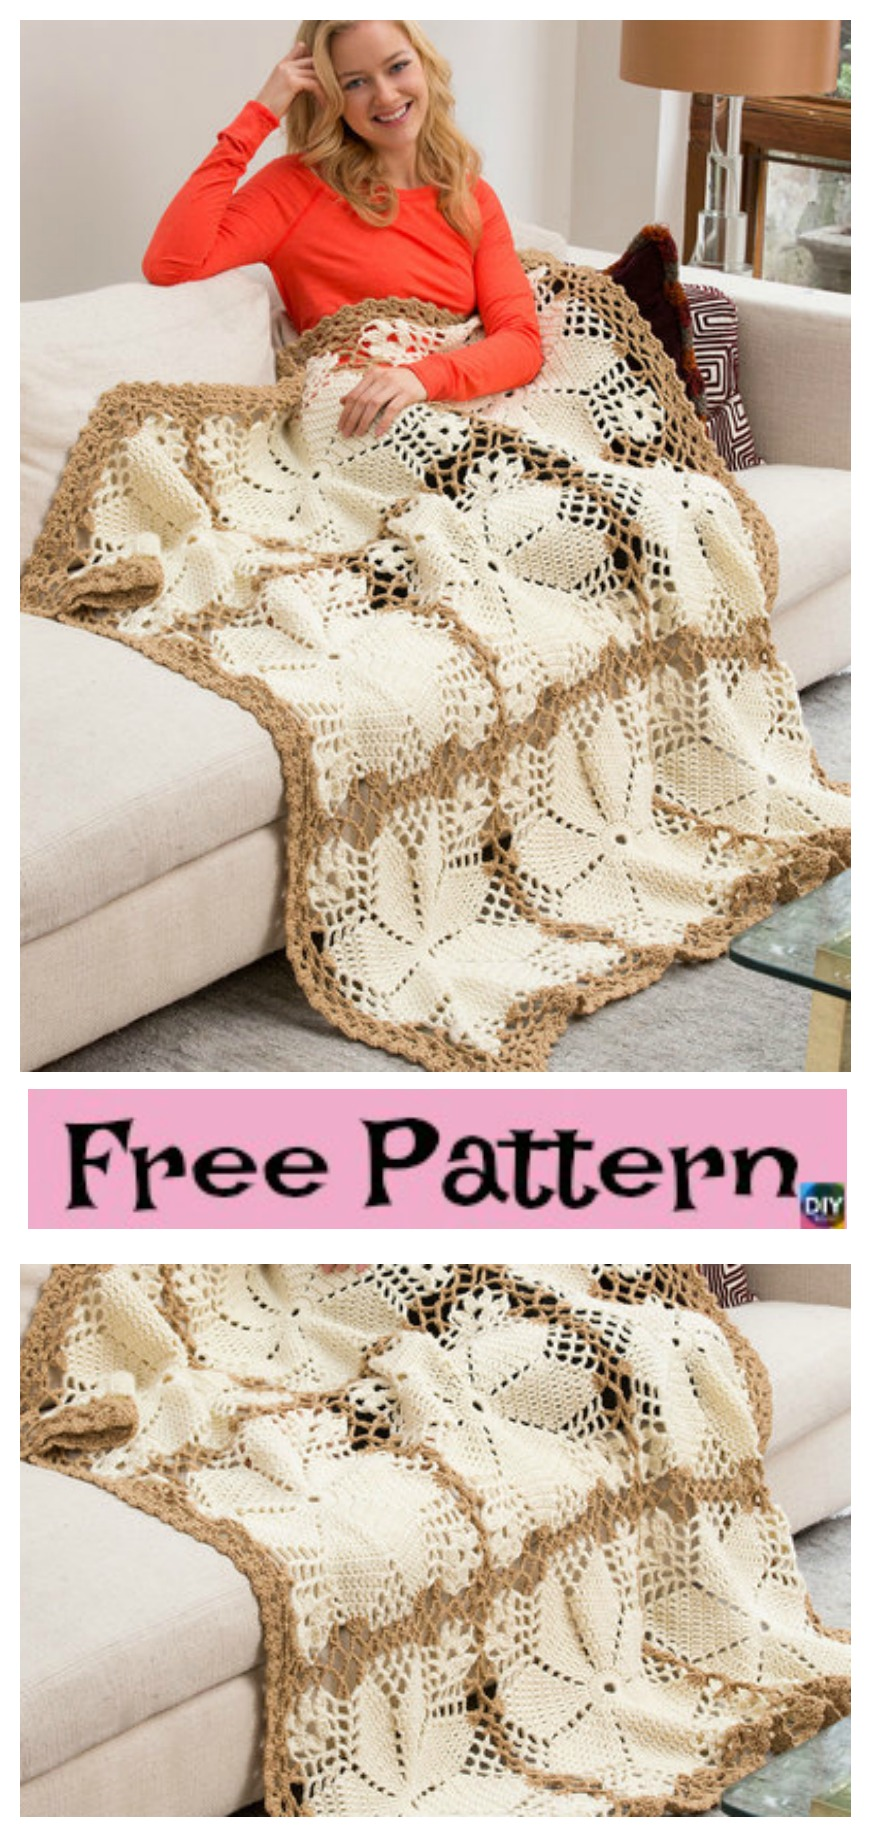 diy4ever-Crochet Lacy Floral Throw - Free Pattern